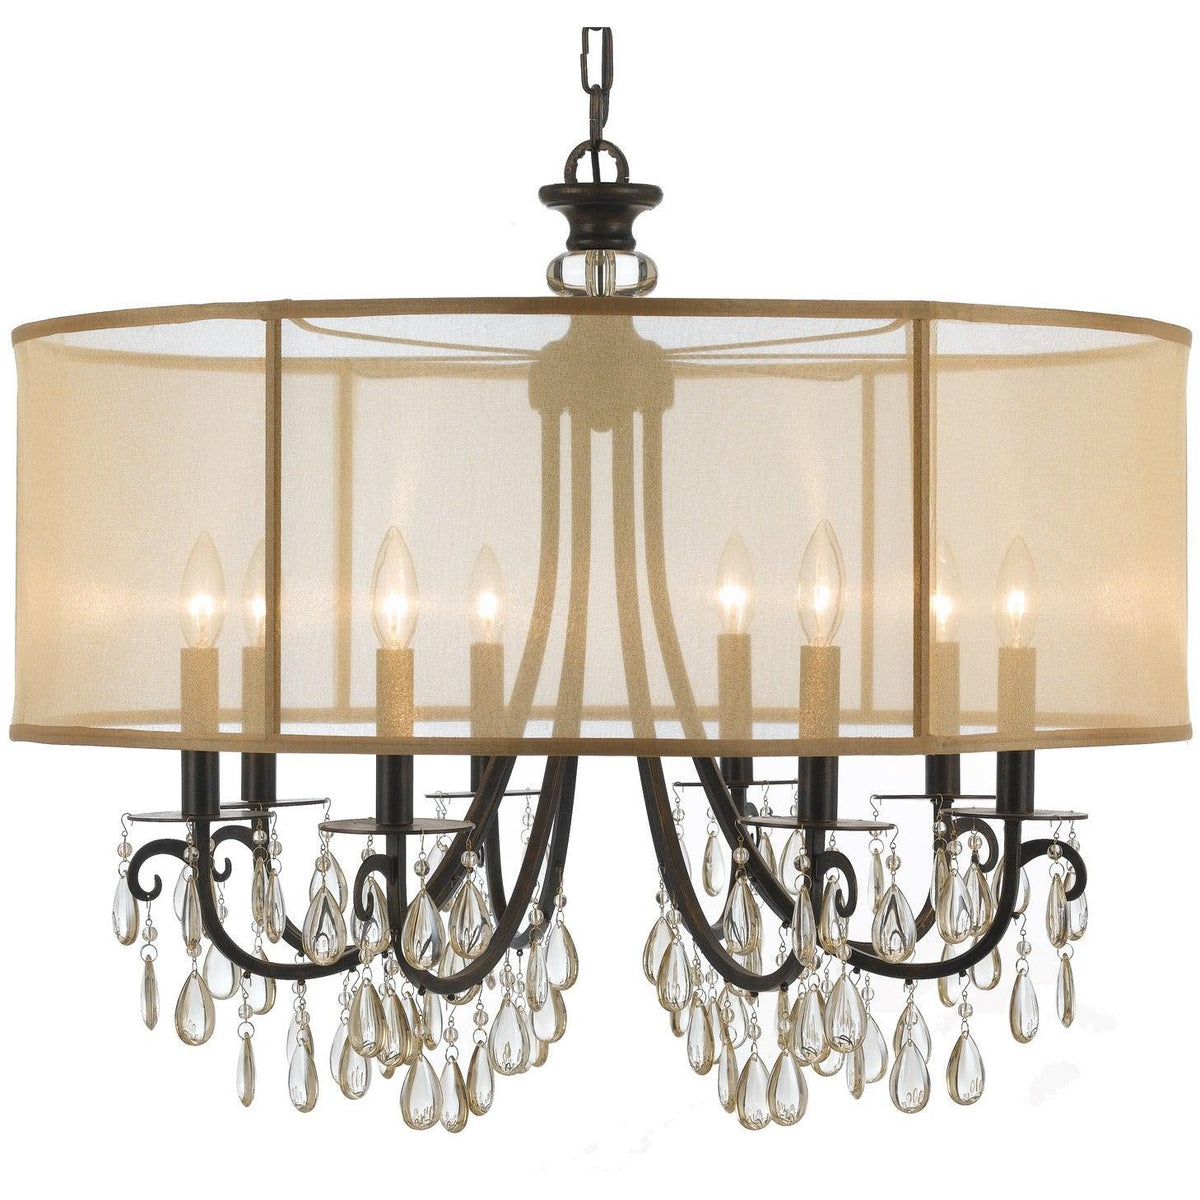 Crystorama - 5628-EB - Eight Light Chandelier - Hampton - English Bronze